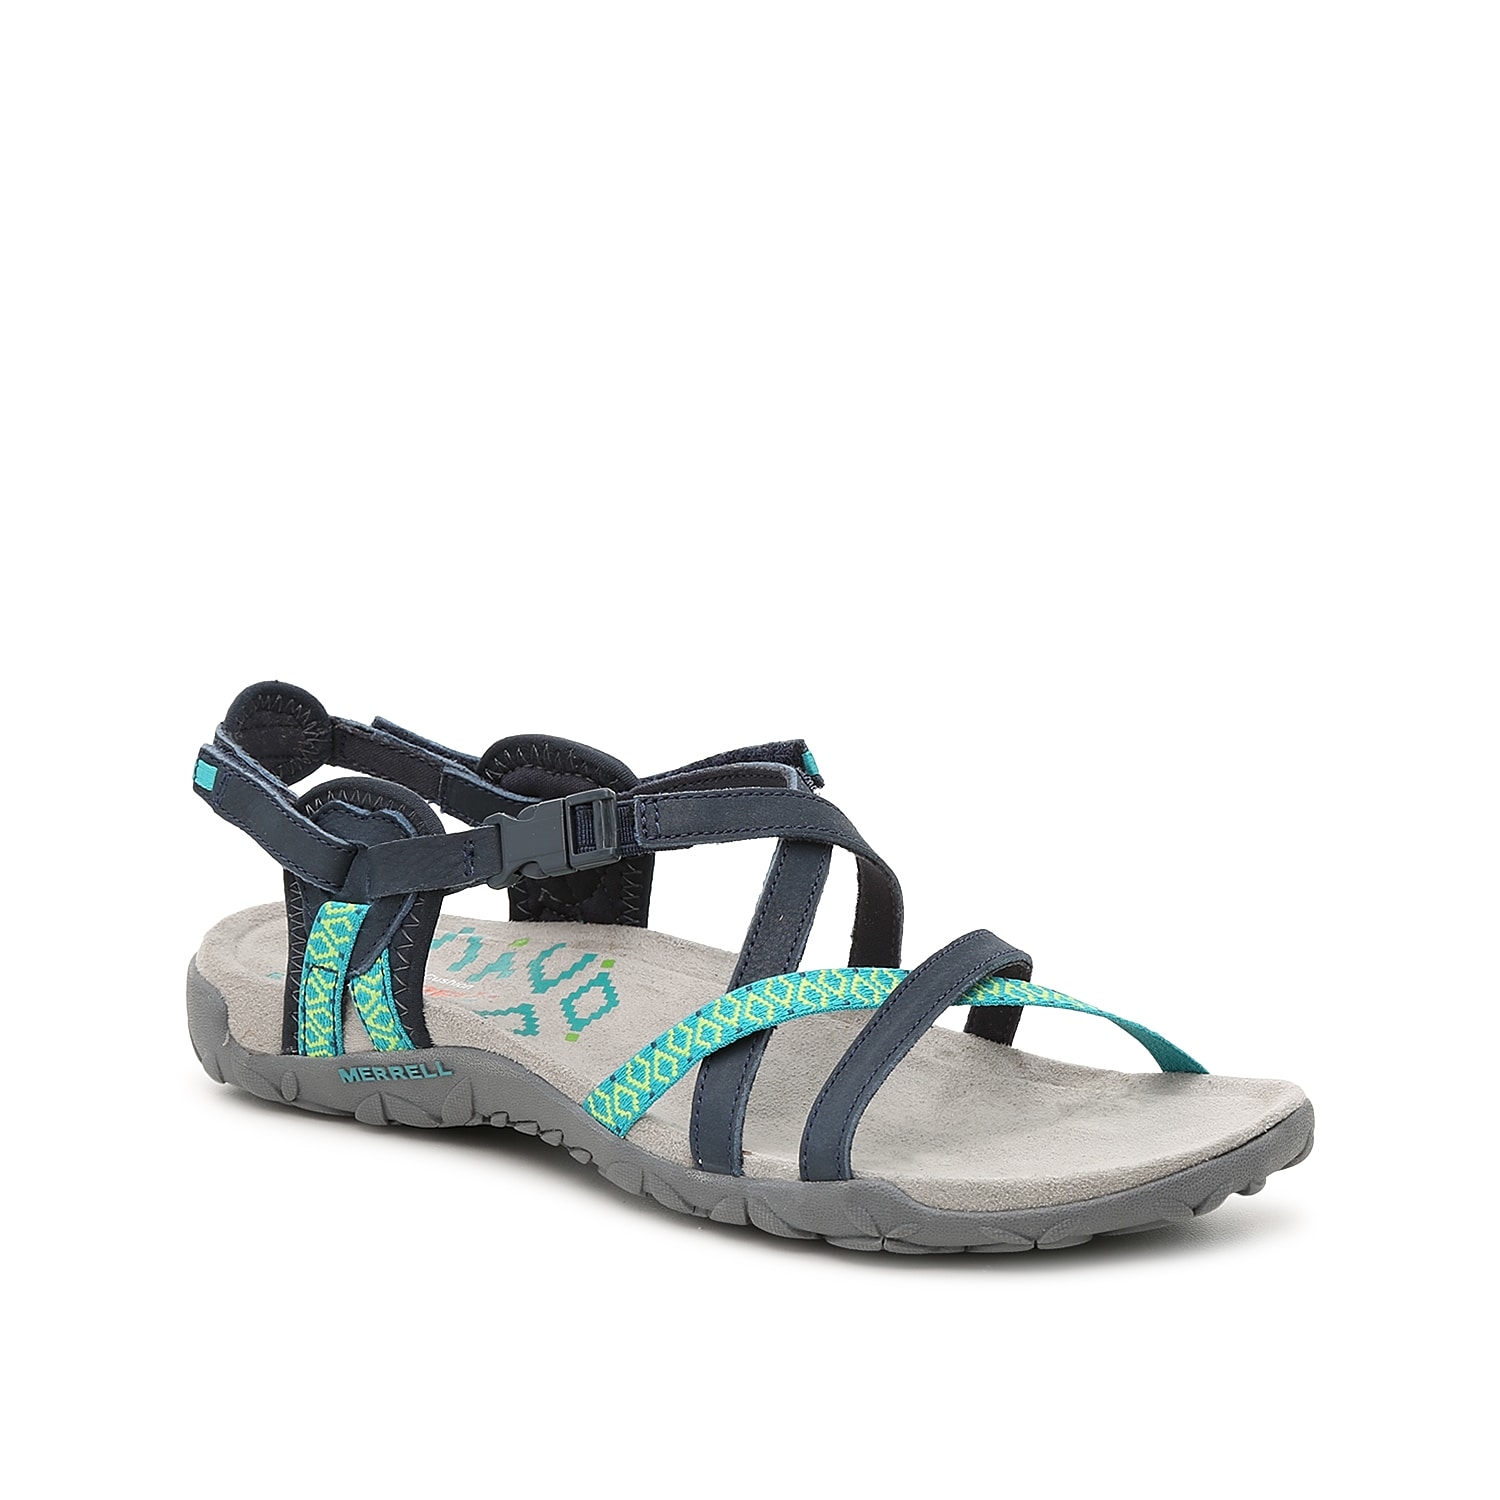 With smooth leather and a soft cushioned footbed, the Merrell Terran Lattice II sandal is the perfect blend of comfort and style! Sporty and casual, these strappy sandals are ideal for weekend wear.